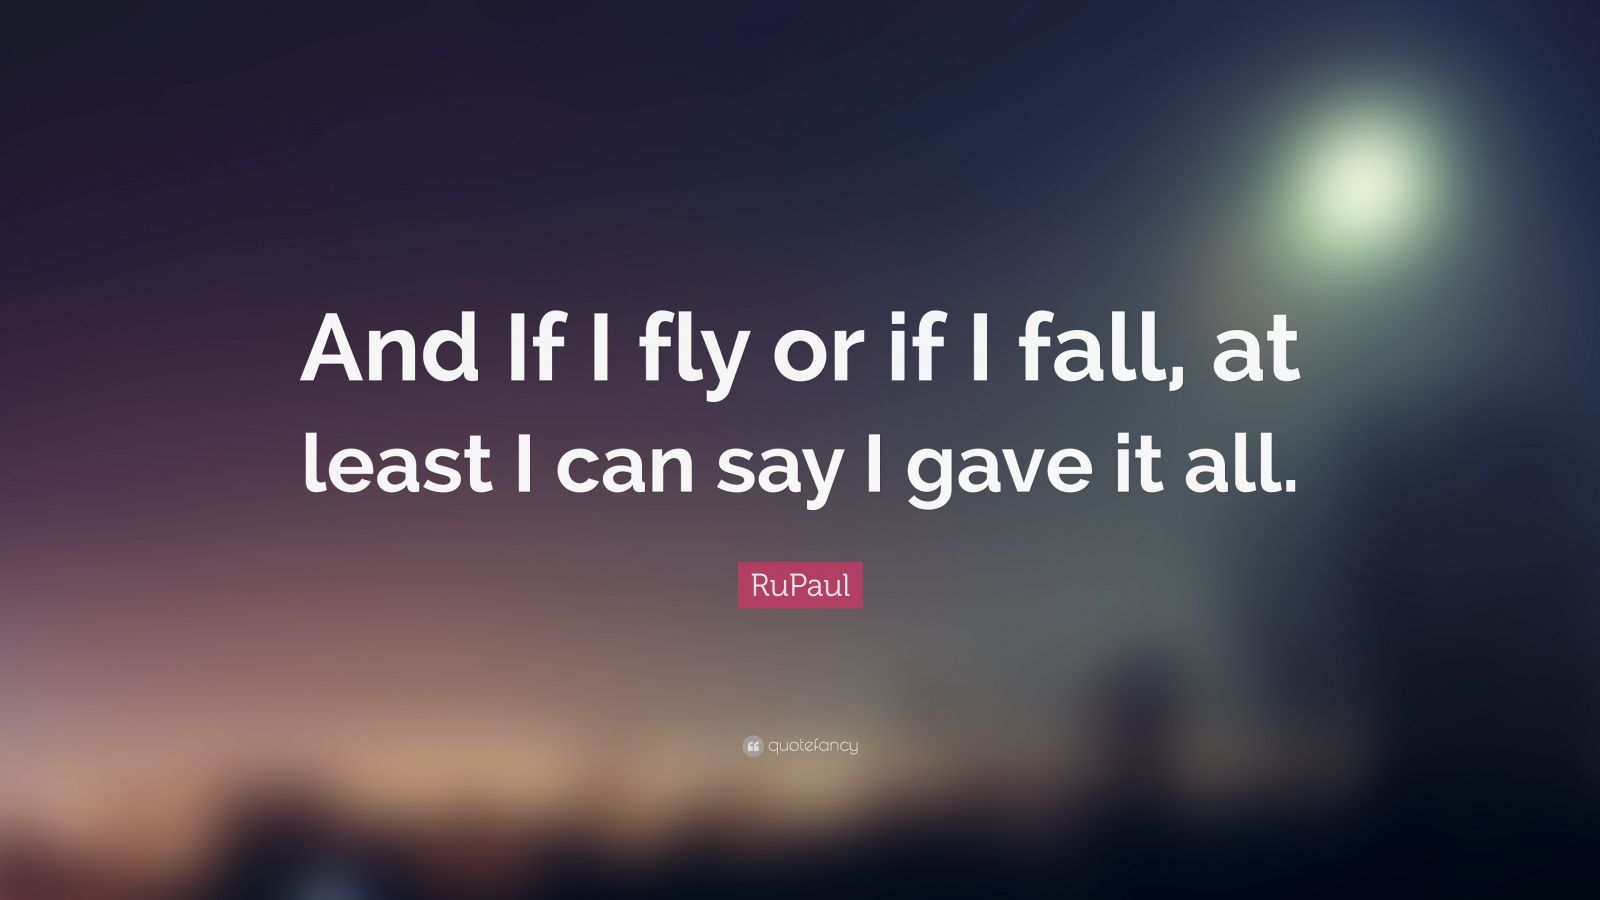 Fall Wallpaper With Verse Rupaul Quote And If I Fly Or If I Fall At Least I Can